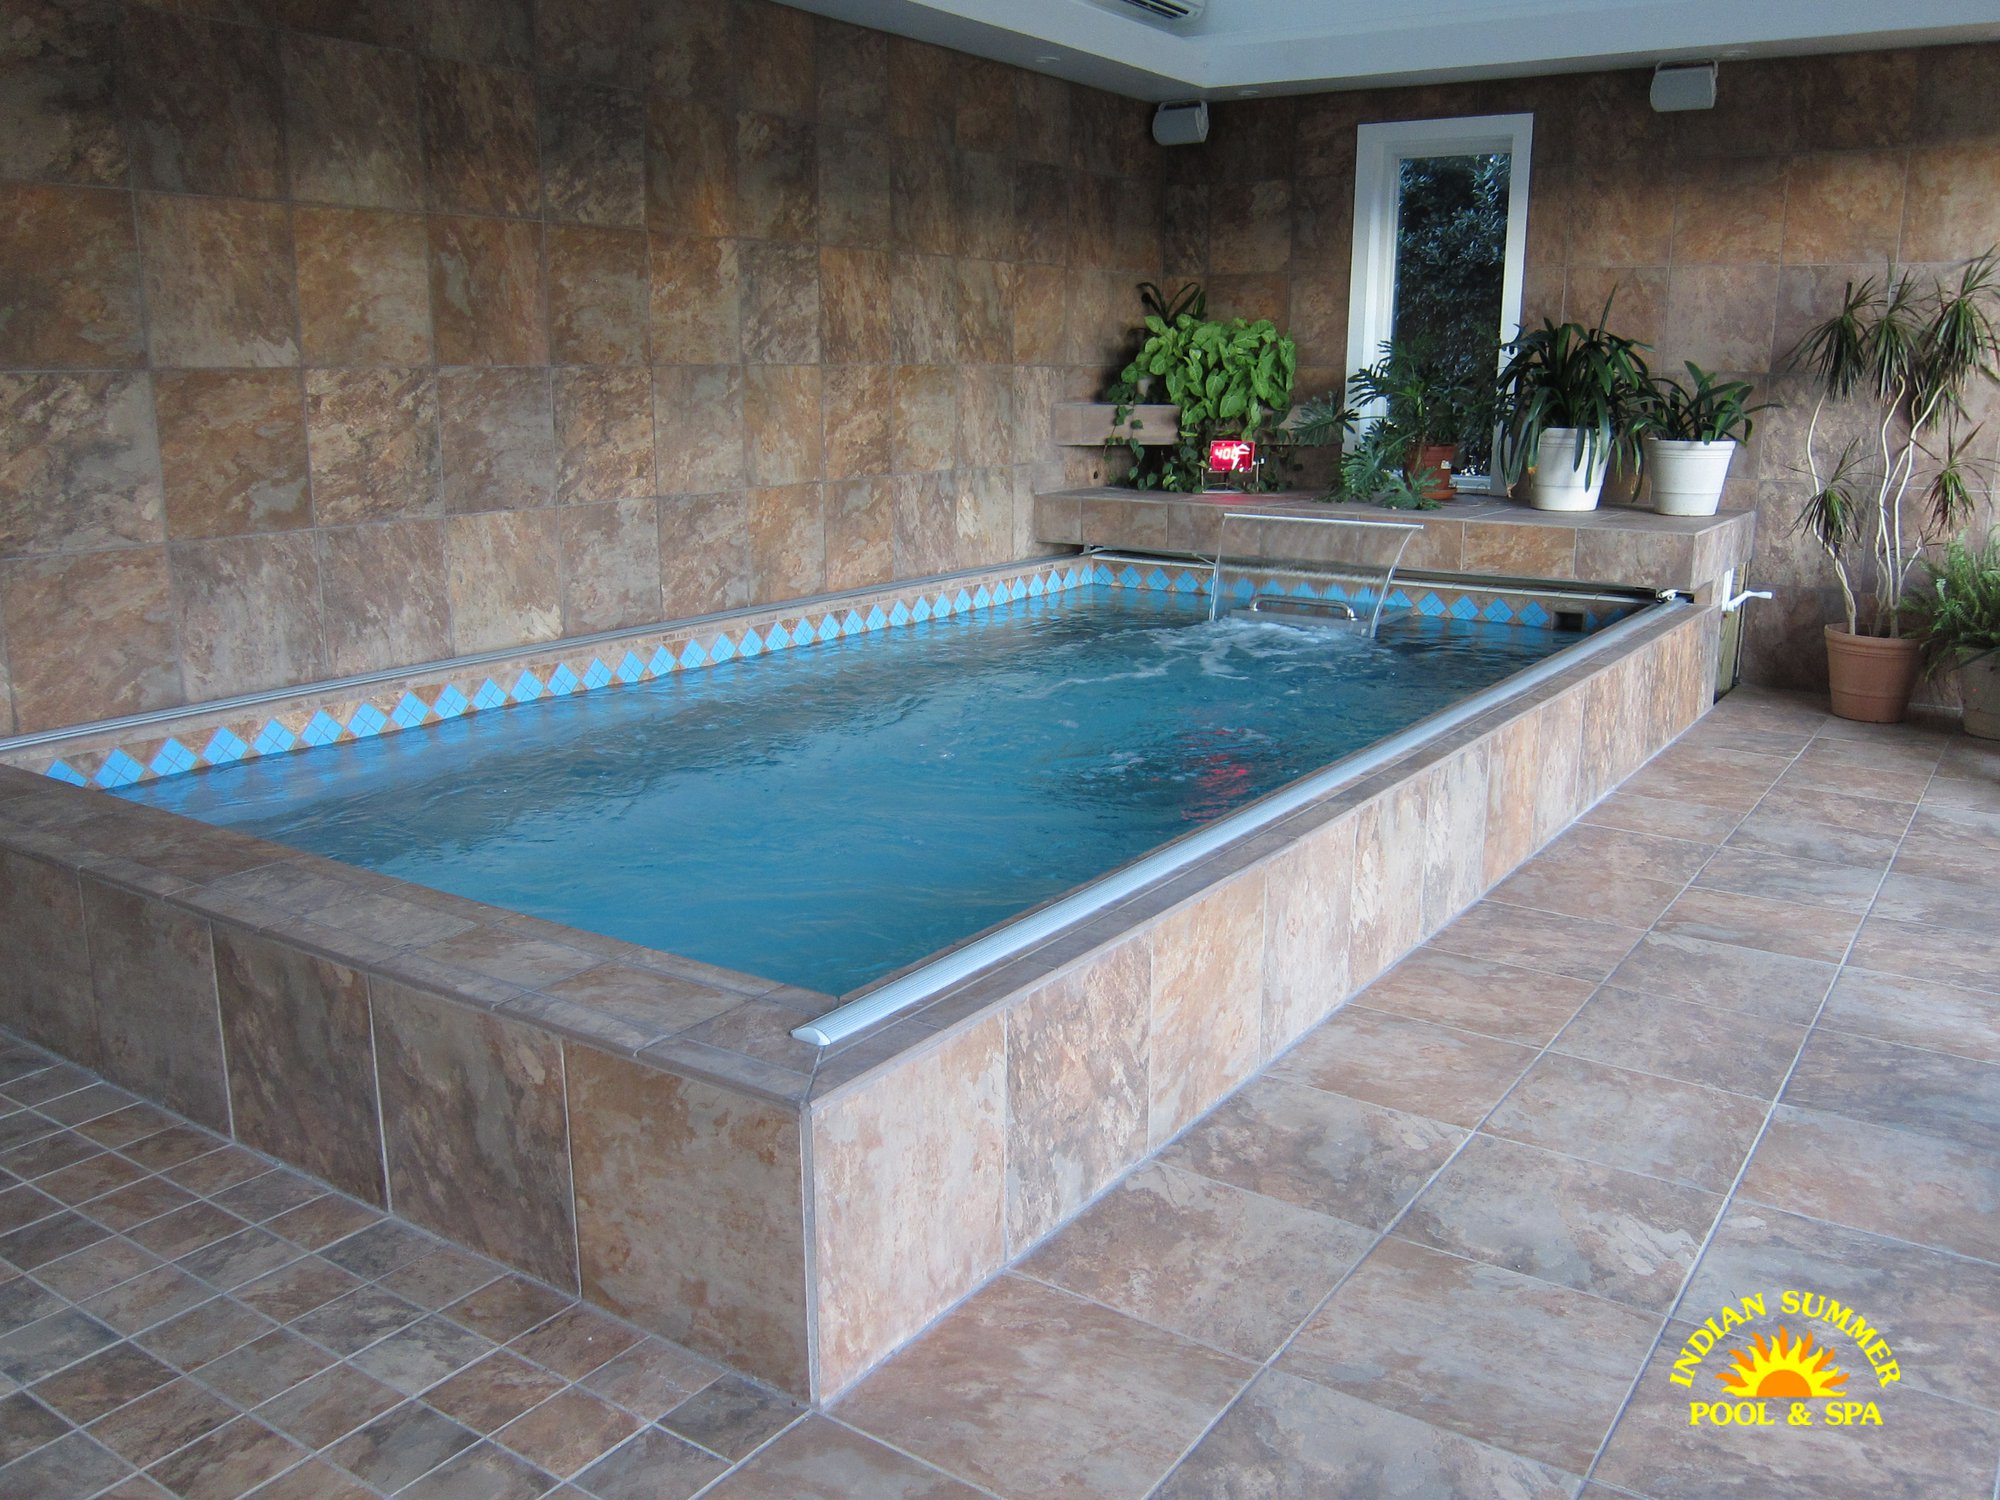 Swim Spas in Springfield MO | Indian Summer Pool and Spa